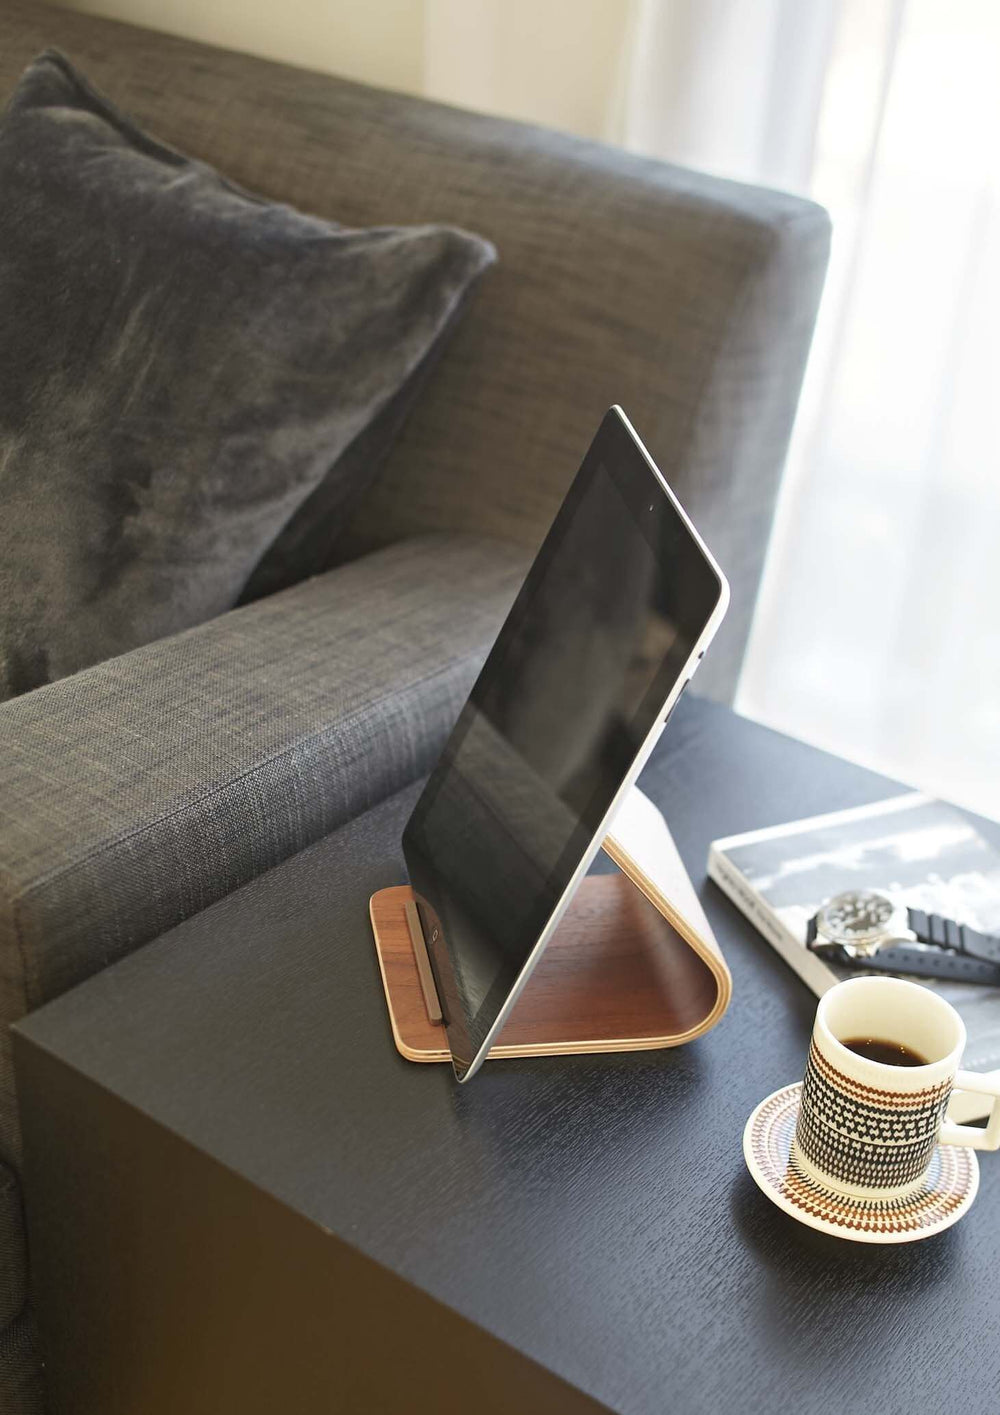 Yamazaki's plywood stand holding a tablet on a side table next to the sofa.